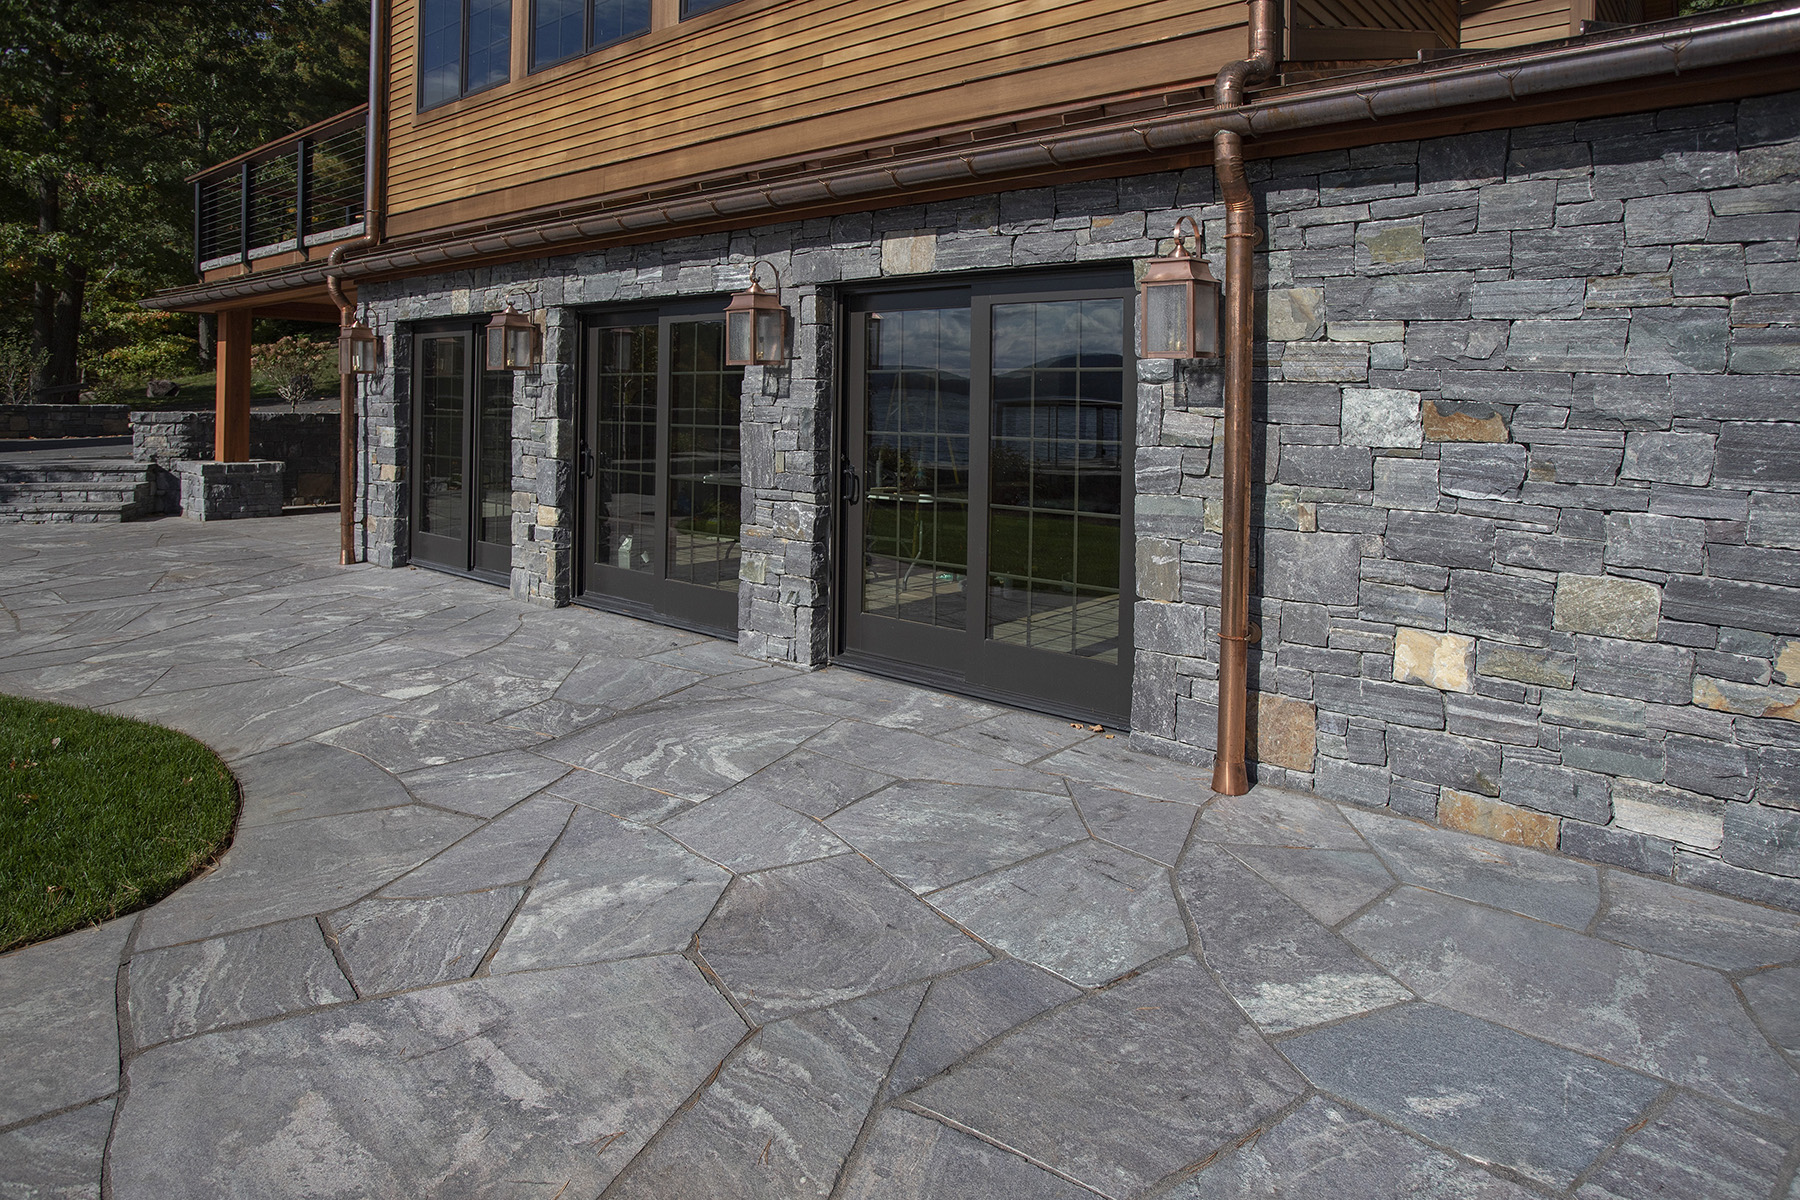 large stone sidewalk looking at building